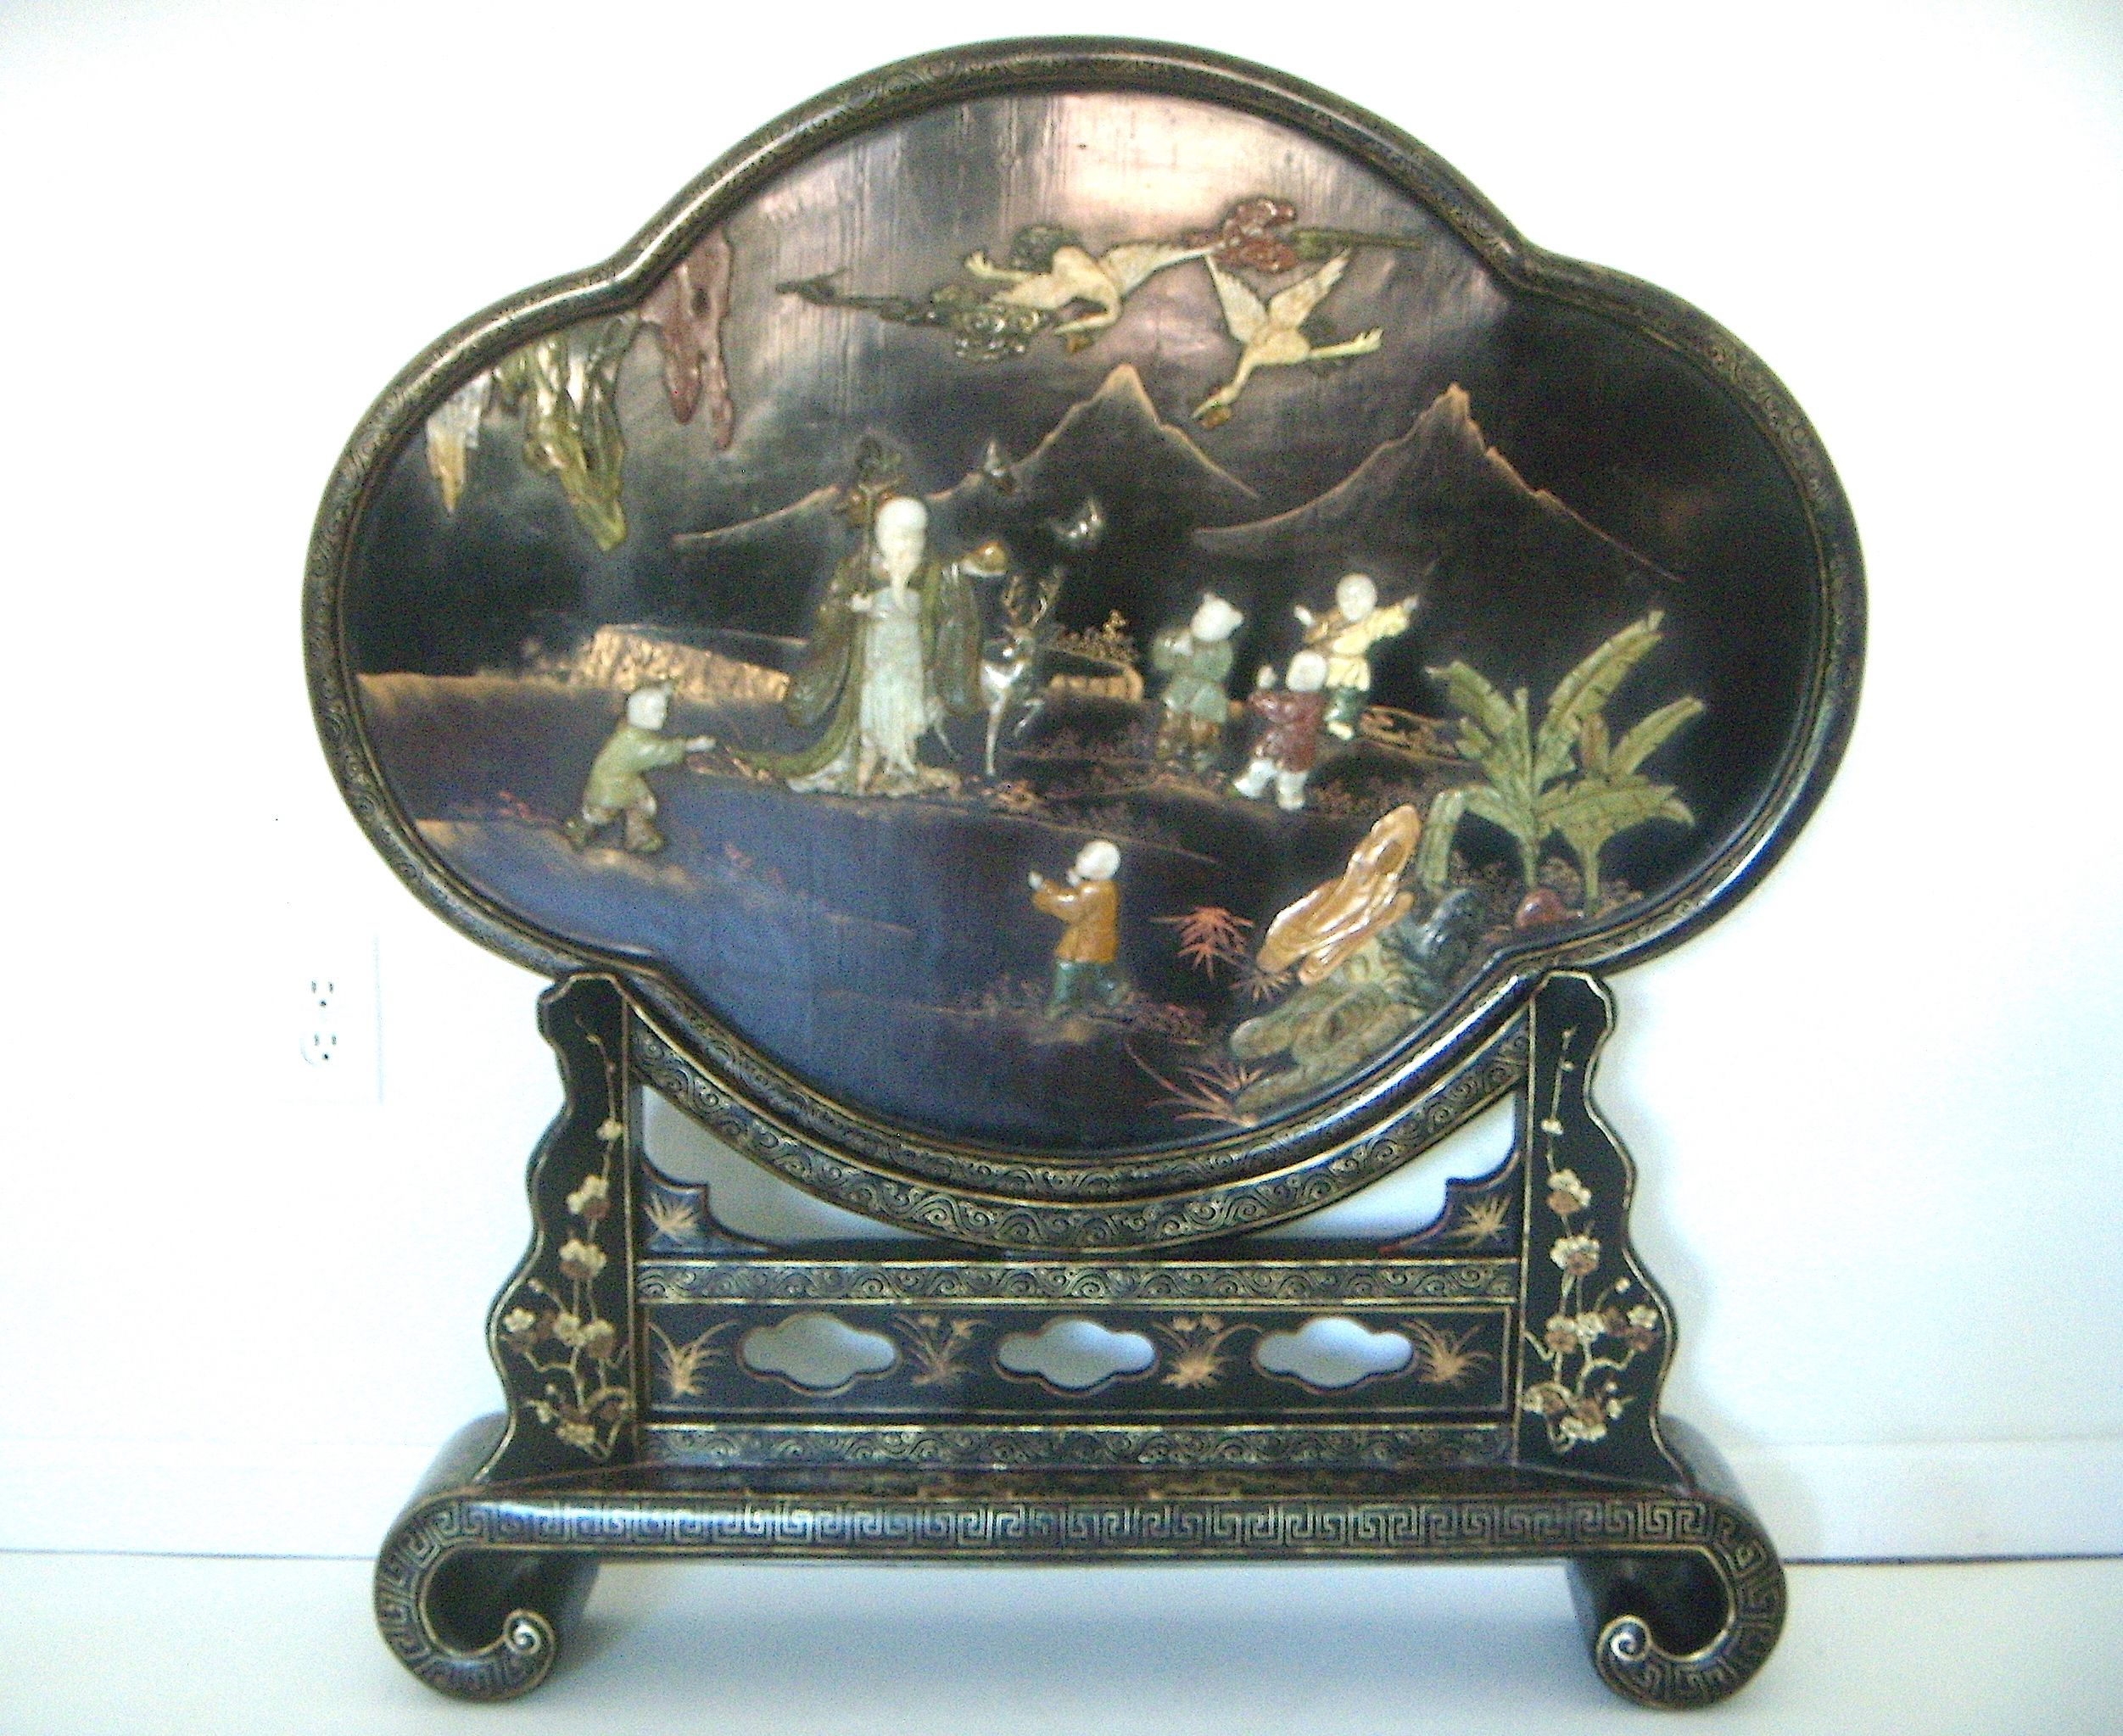 Magnificent and one of a kind black lacquer Chinese Fire Screen or Room Divider on matching scroll display stand made for the export market late 19th. C, early 20th. C. Quatrefoil shaped screen depicts five children at play surrounding 'Sau', (one of the three wise men representing longevity).  Find on Chairish soon.